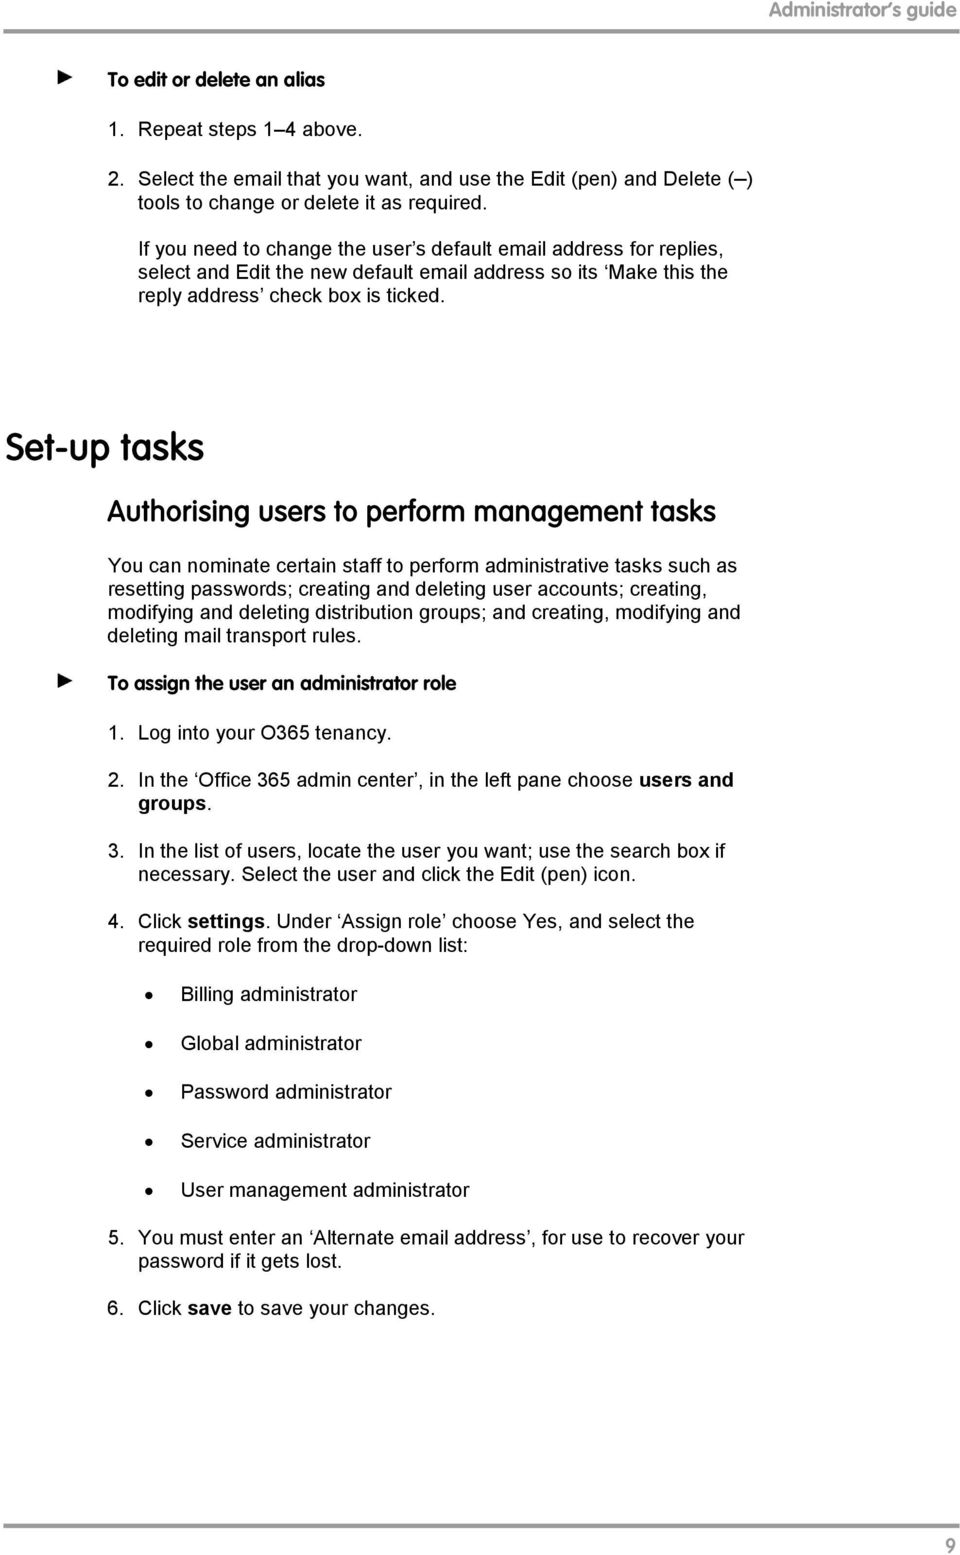 Set-up tasks Authrising users t perfrm management tasks Yu can nminate certain staff t perfrm administrative tasks such as resetting passwrds; creating and deleting user accunts; creating, mdifying